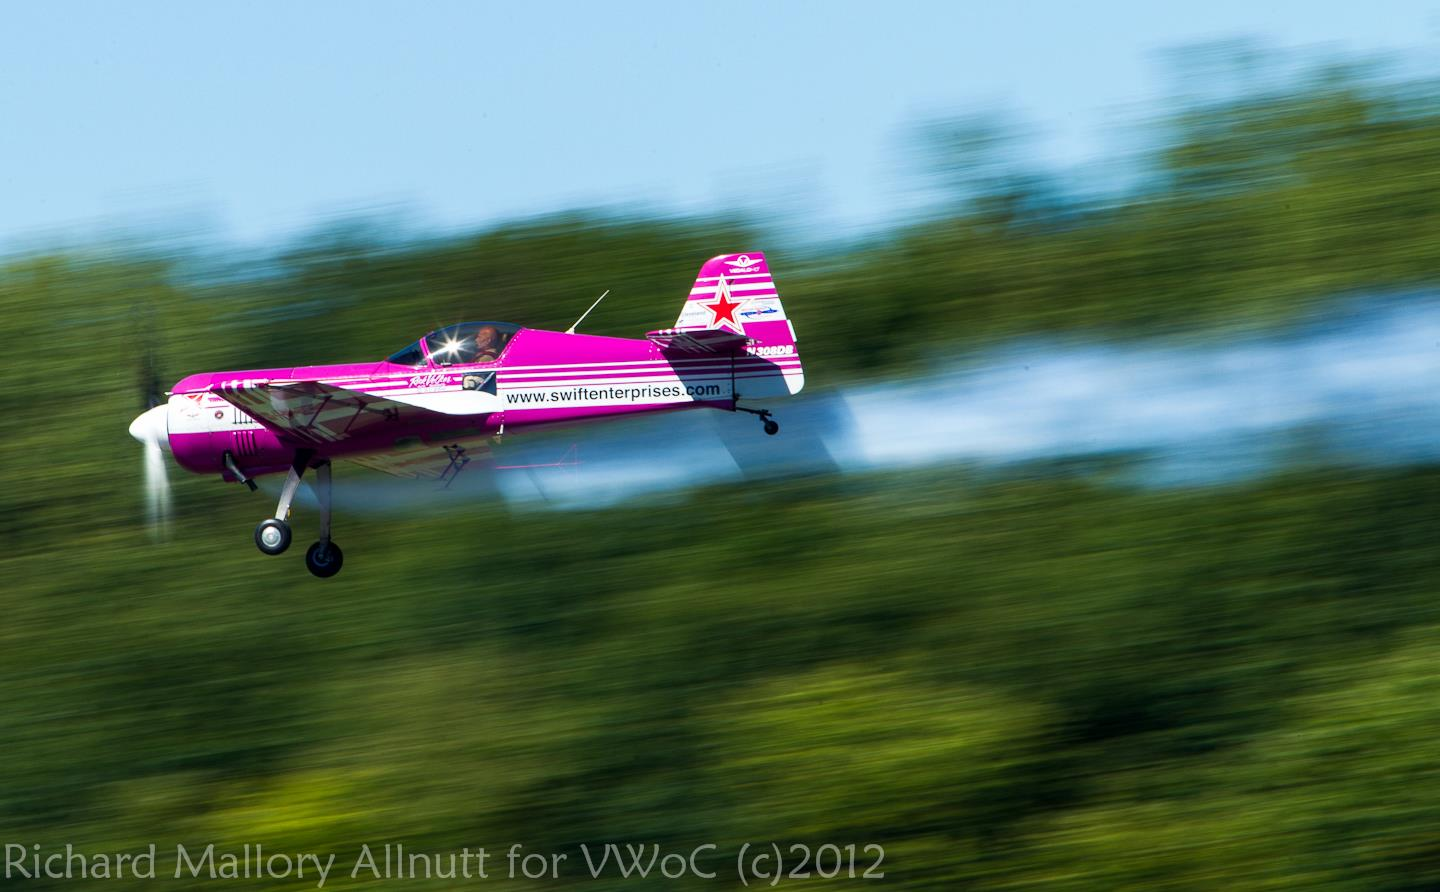 Rick Volker in his Sukhoi Su-26 at Vintage Wings of Canada's air show Wings Over Gatineau air show in Gatineau, Quebec during 2012. (photo by Richard Mallory Allnutt)